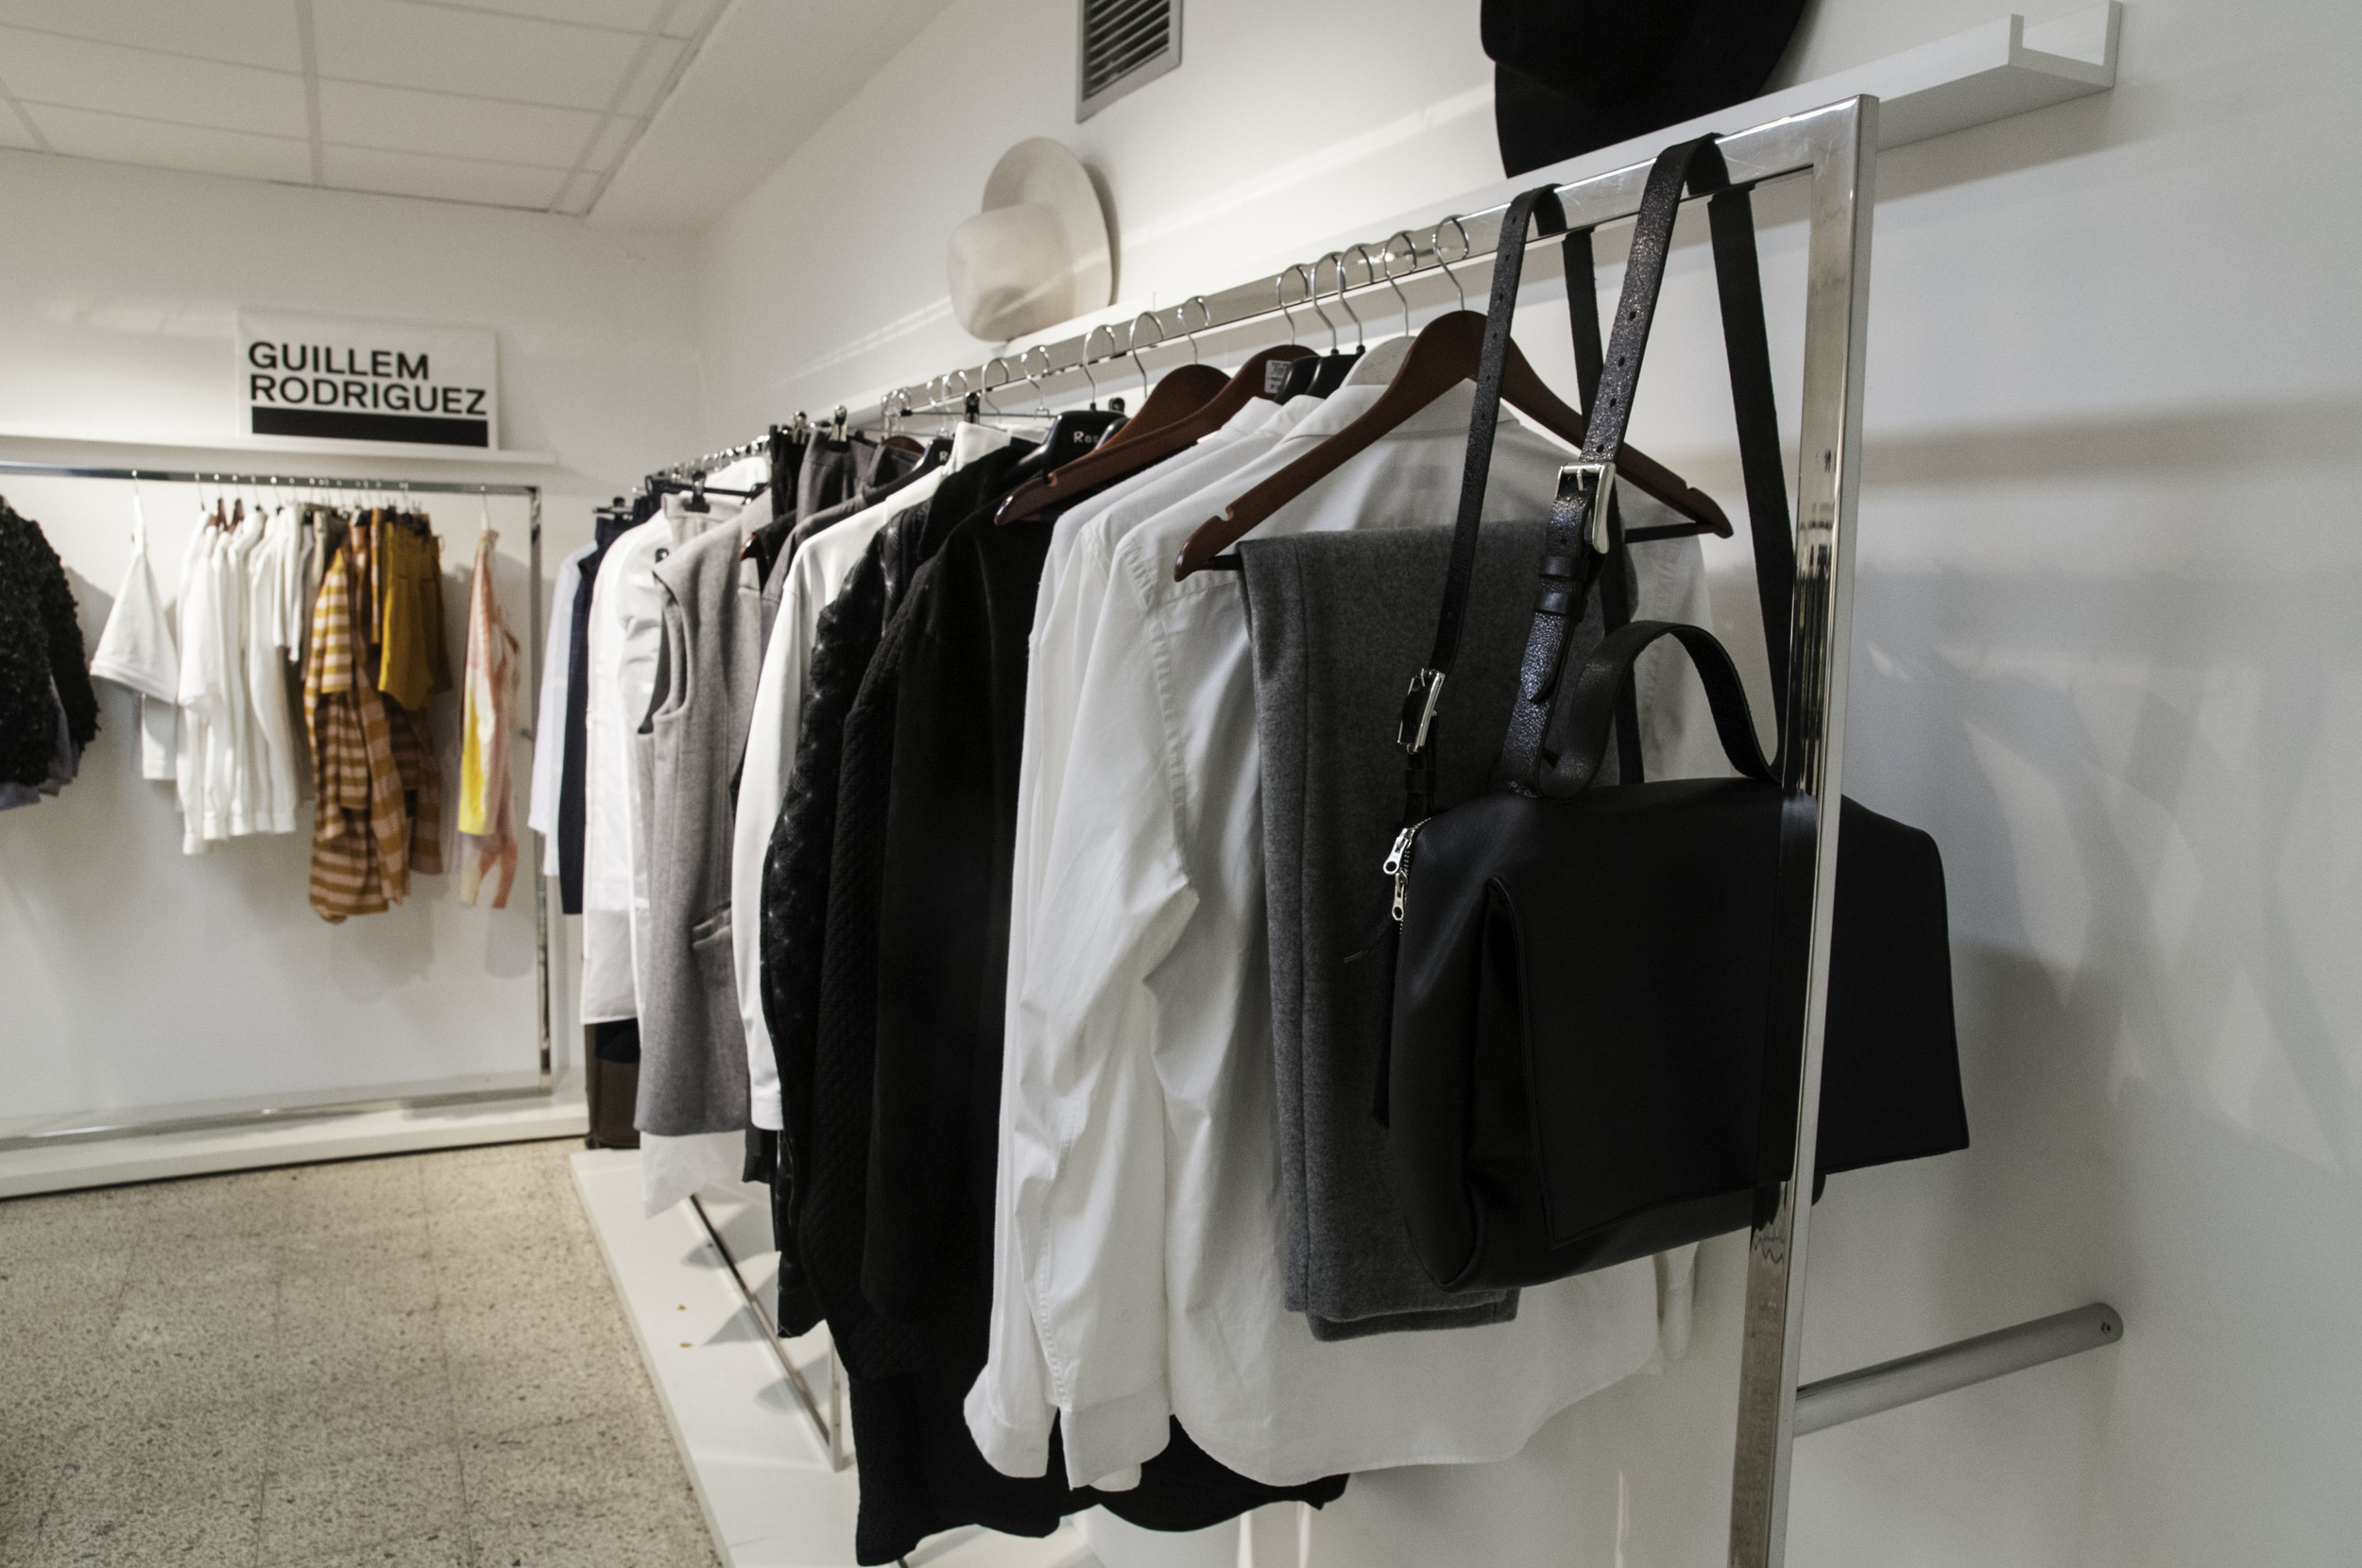 Private showroom is perfect for meeting with buyers or press